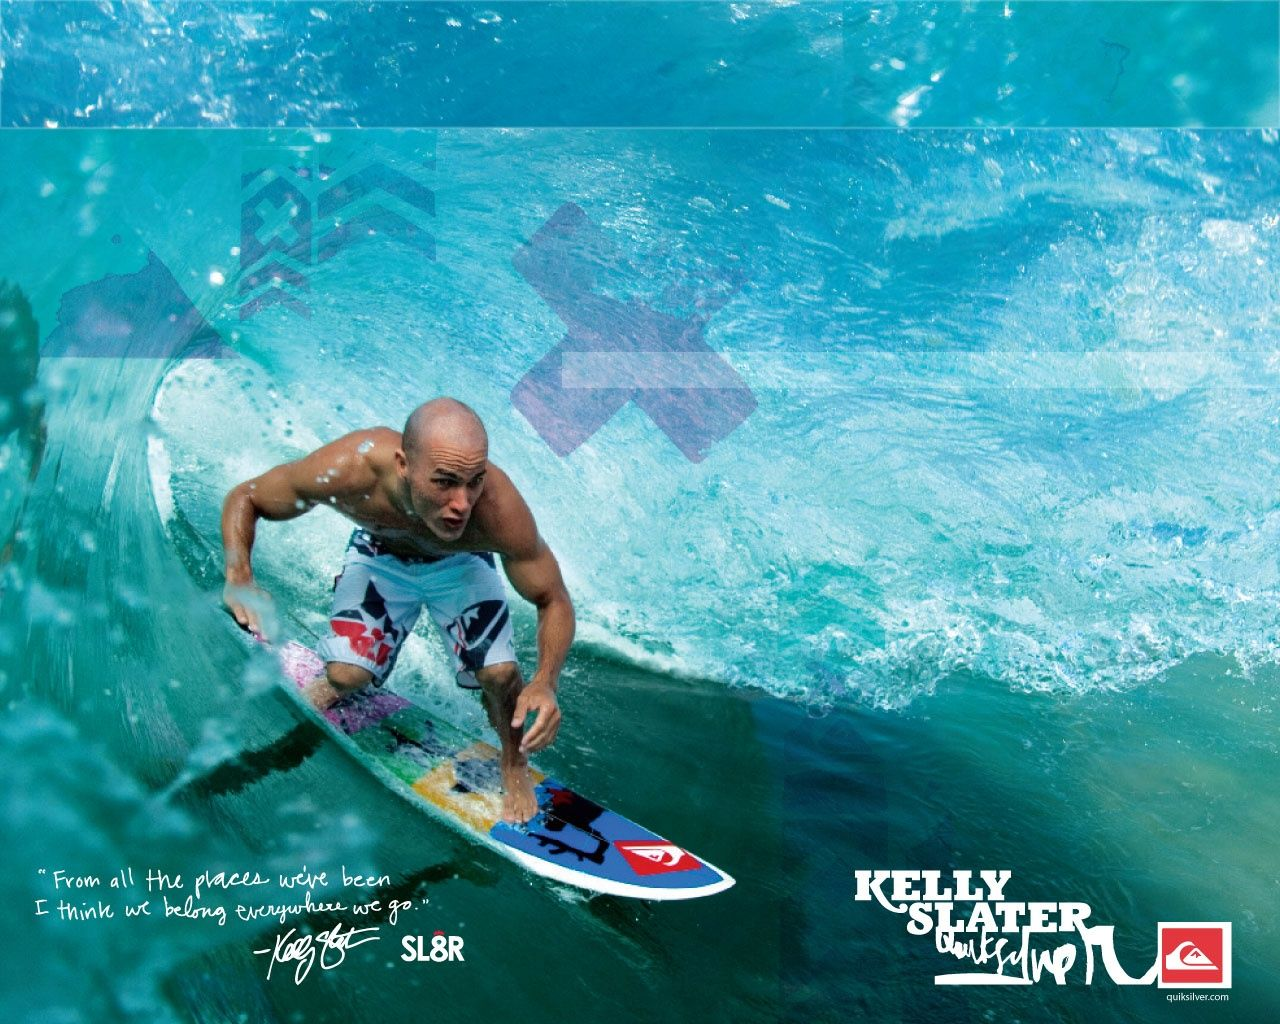 Kelly Slater Quiksilver Wallpaper